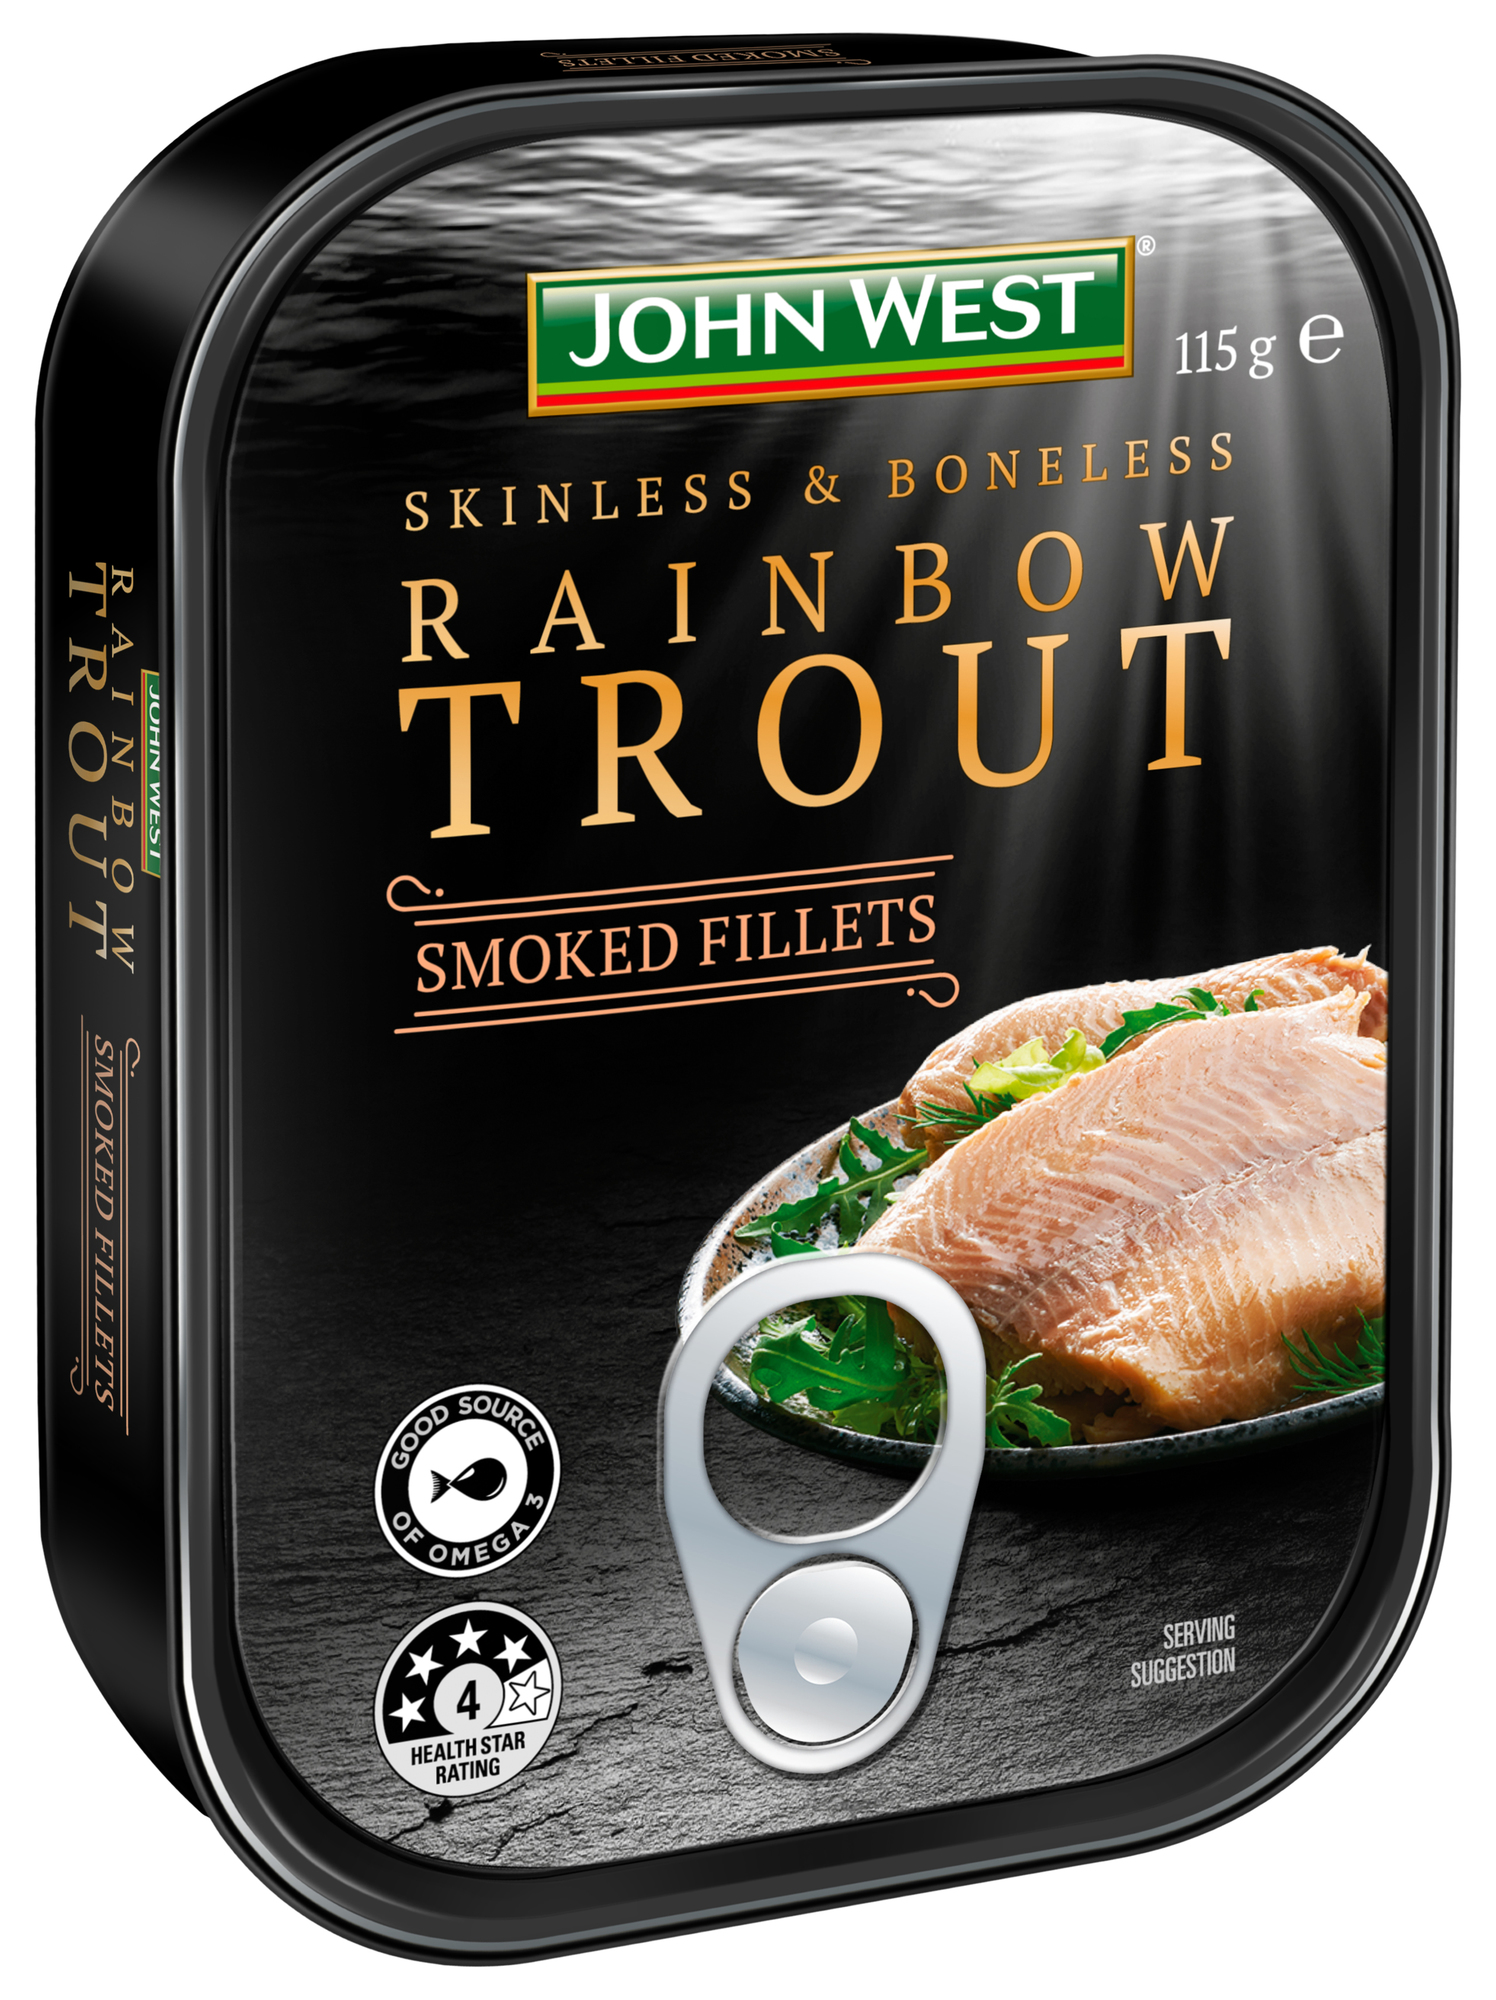 Rainbow Trout Smoked Fillets 115g